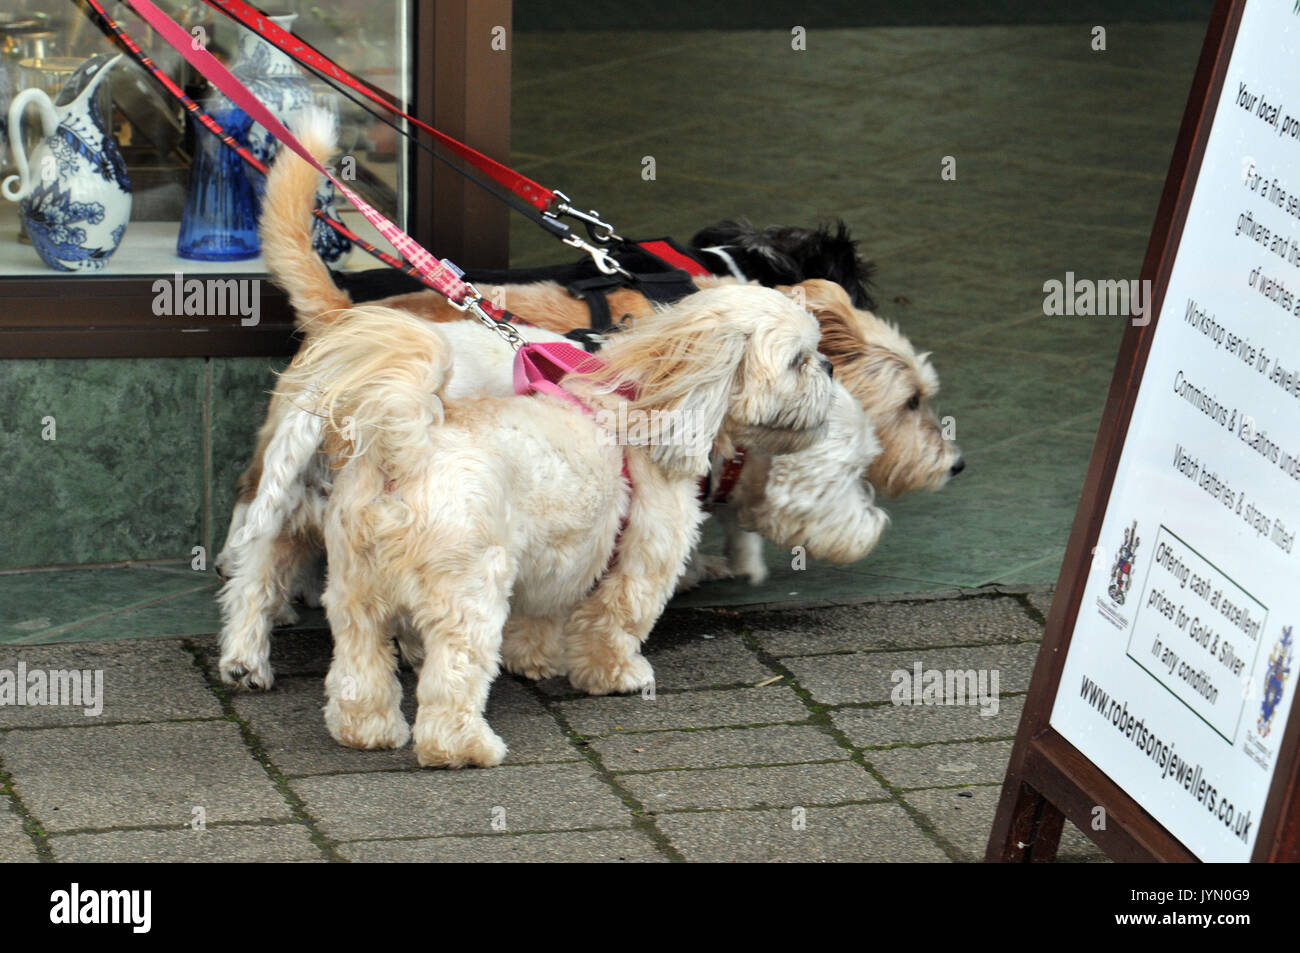 four terriers 4 on leads being walked by responsible dog owners multiple dogs walkies small dogs and pups puppies - Stock Image